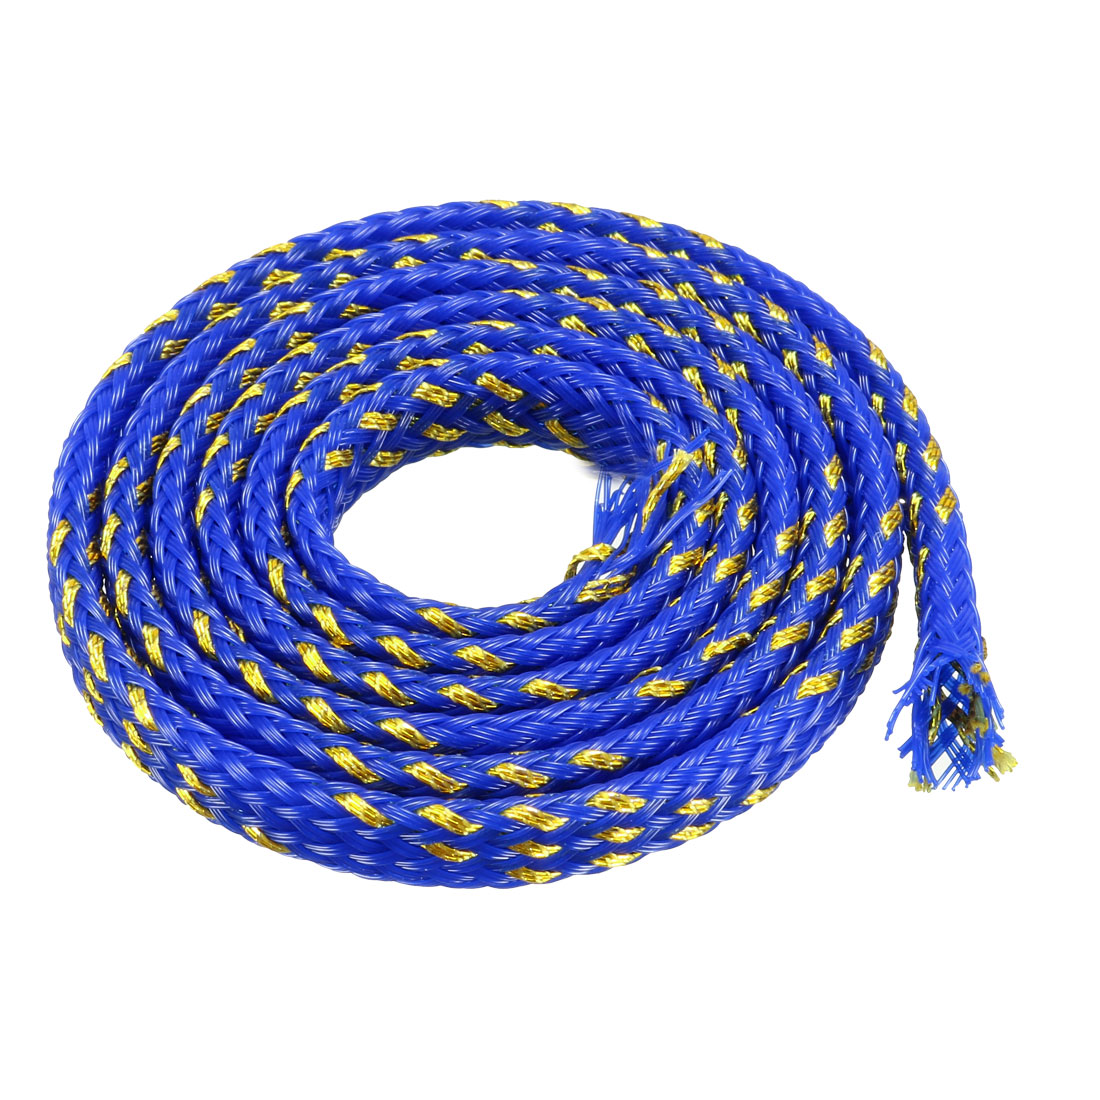 4mm Dia Tight Braided PET Expandable Sleeving Cable Wrap Sheath Golden Blue 5CM Length